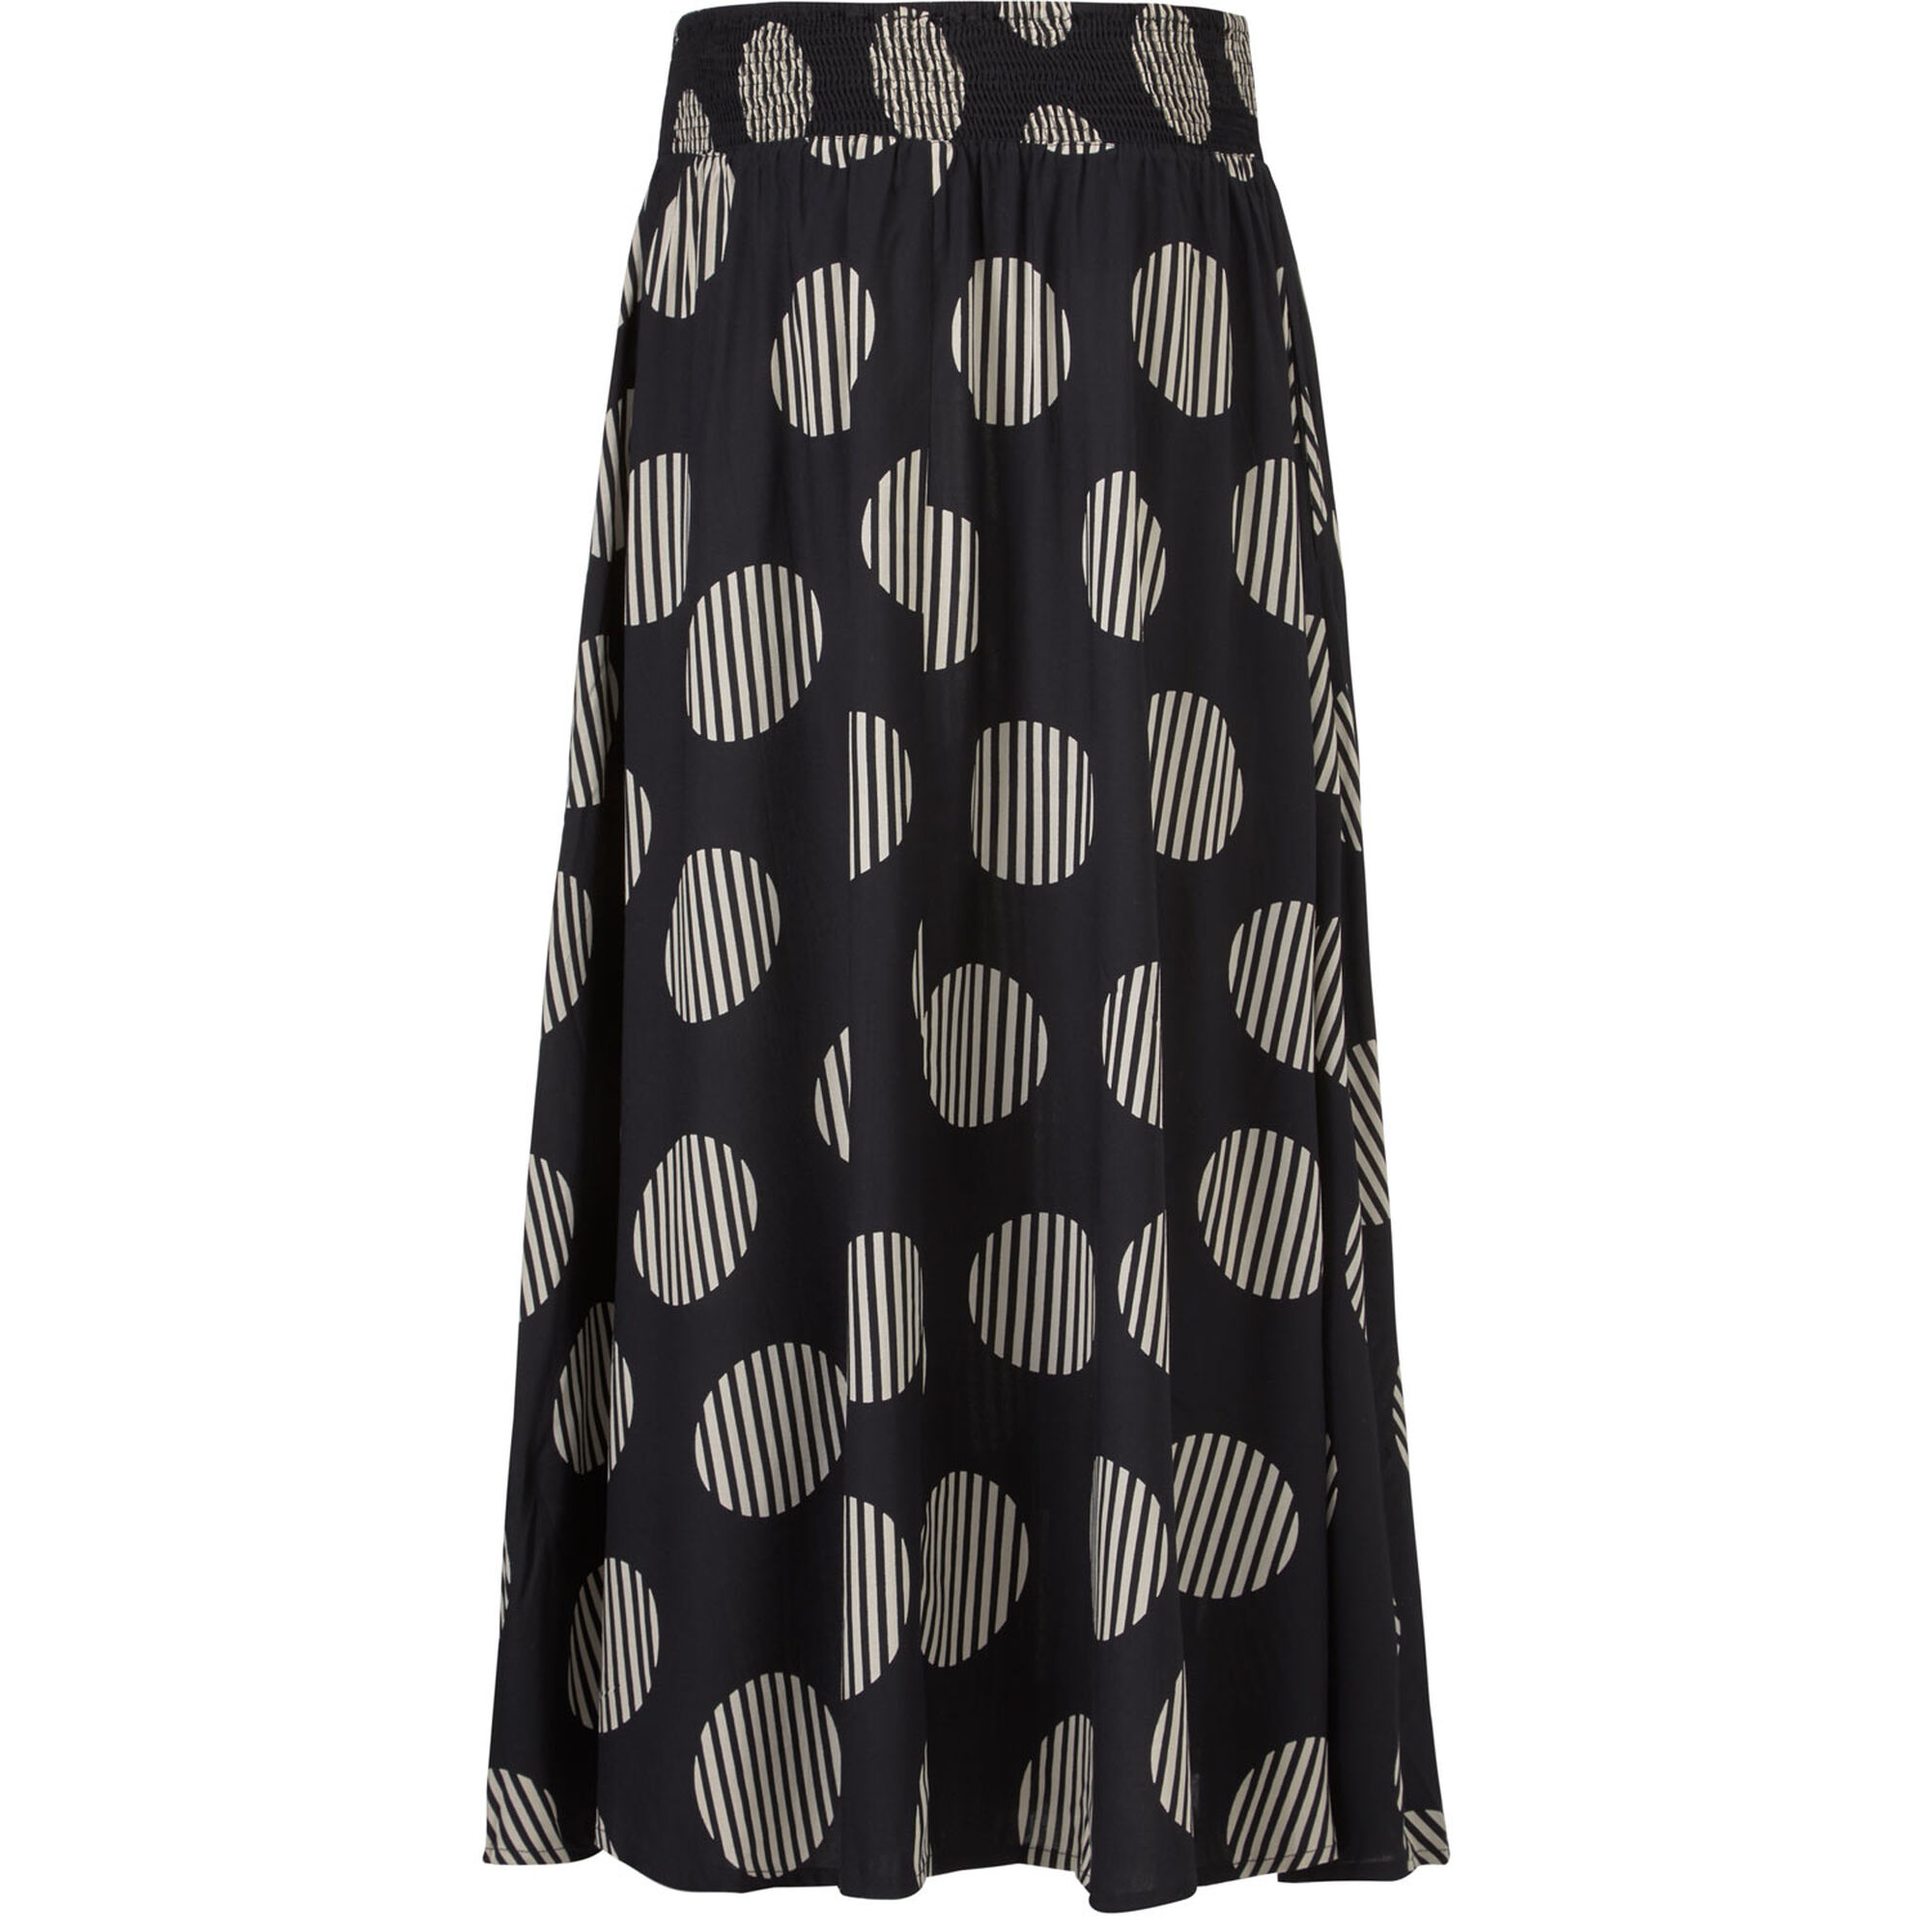 SADIE SKIRT, Black, hi-res